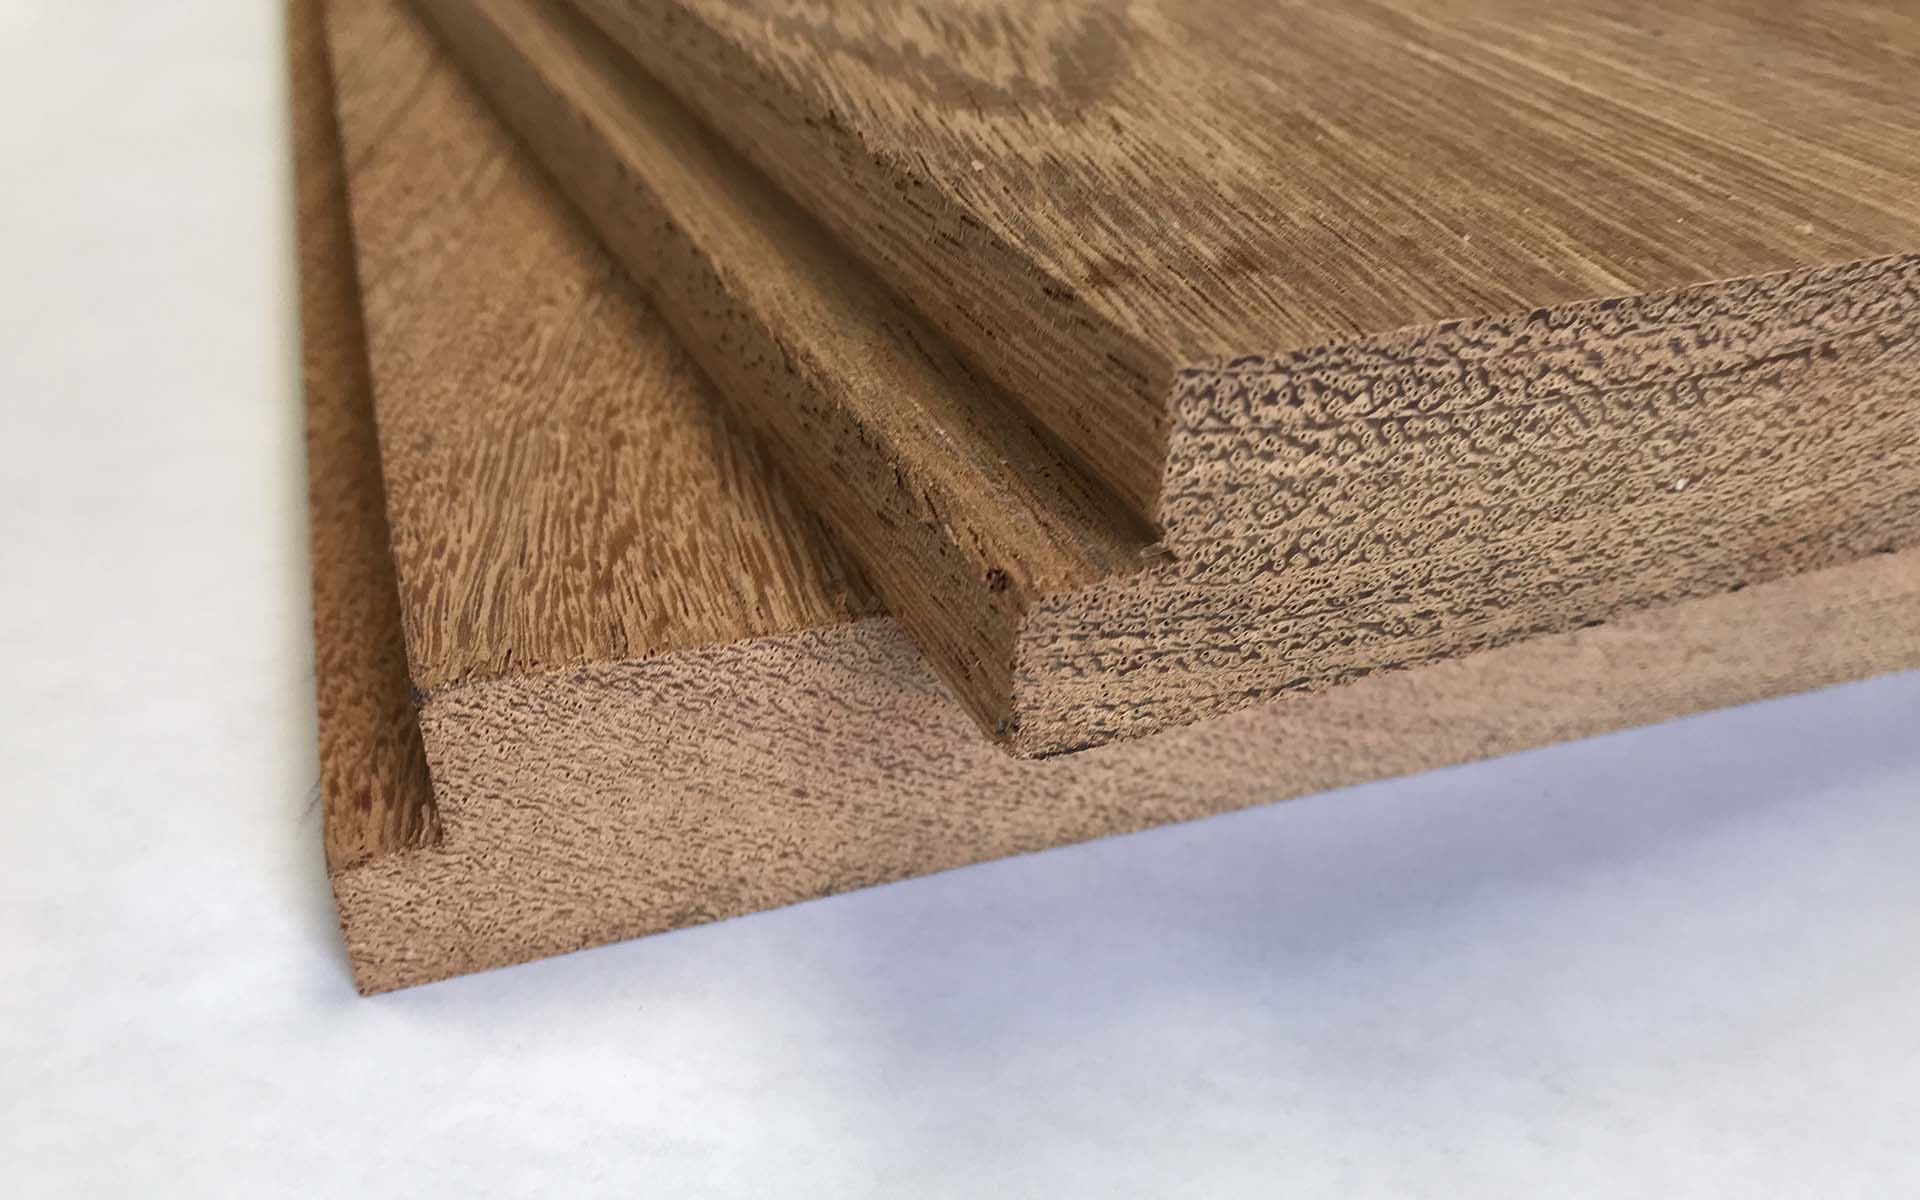 hardwood flooring wide or narrow plank of buy trailer decking apitong shiplap rough boards truck flooring regarding 3 angelim pedra shiplap close up